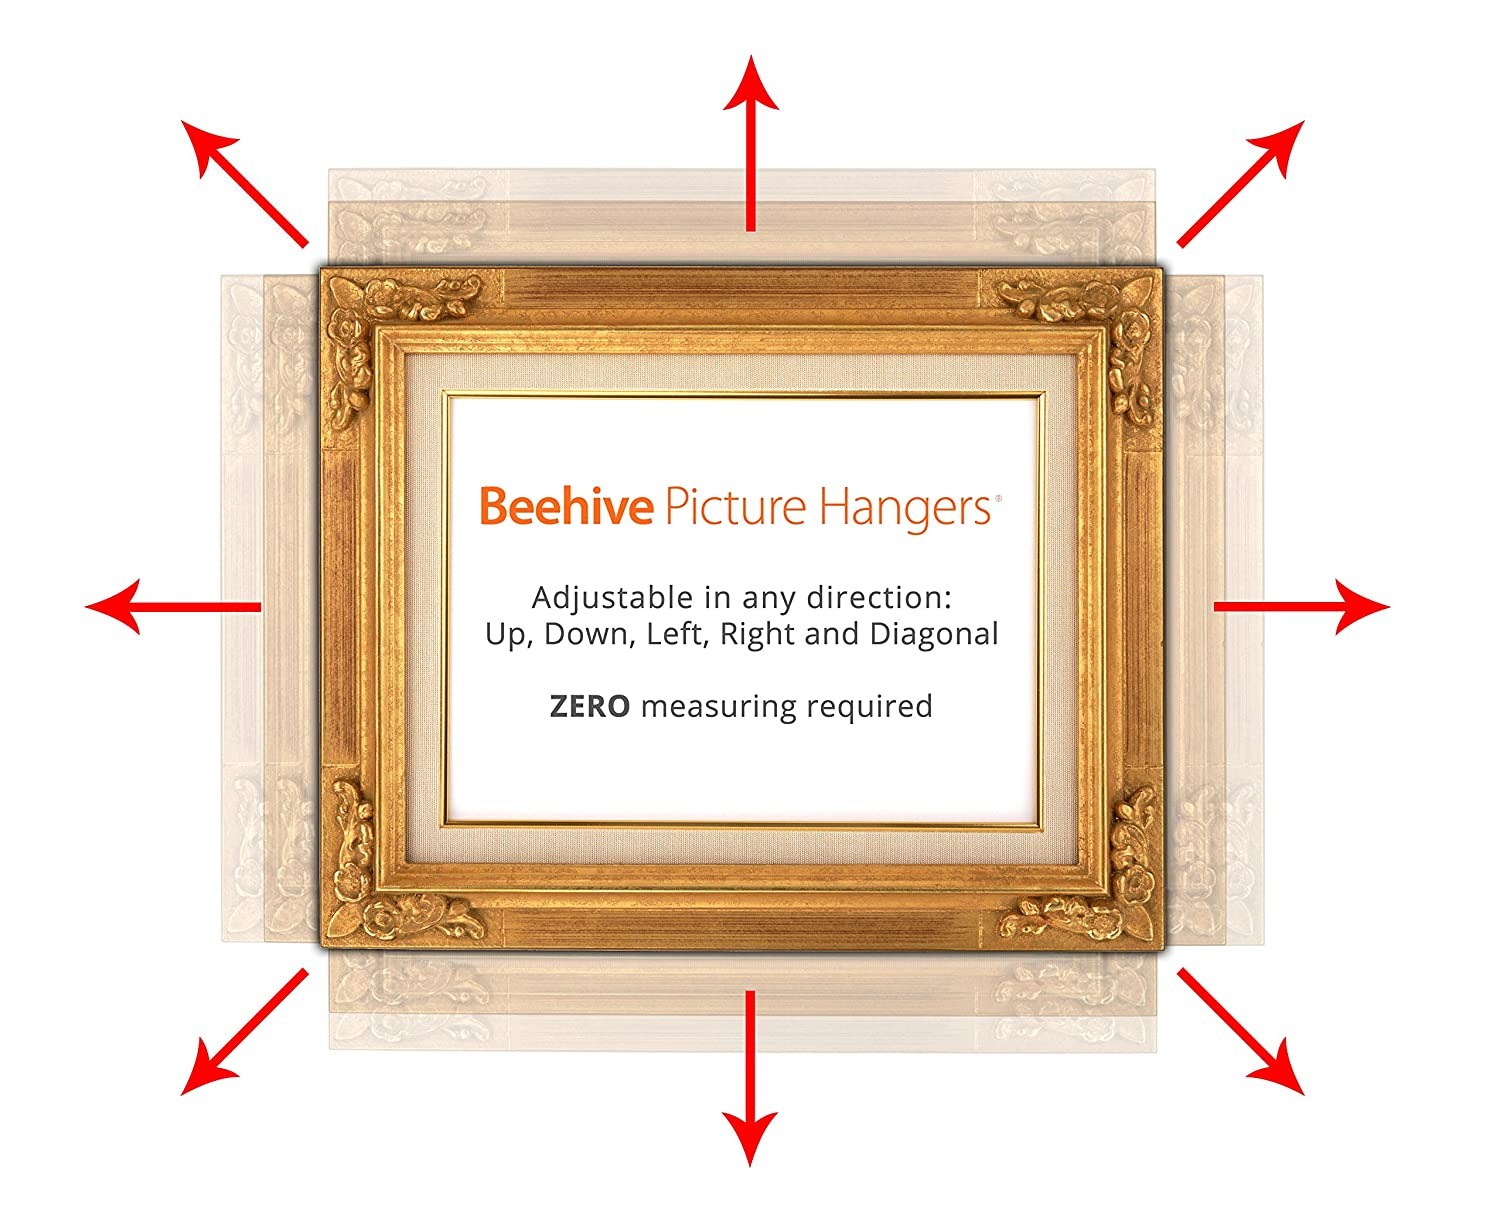 Beehive picture hangers revolutionary picture frame hanging kit beehive picture hangers revolutionary picture frame hanging kit and framed picture hanger 12 pack max size amazon jeuxipadfo Gallery